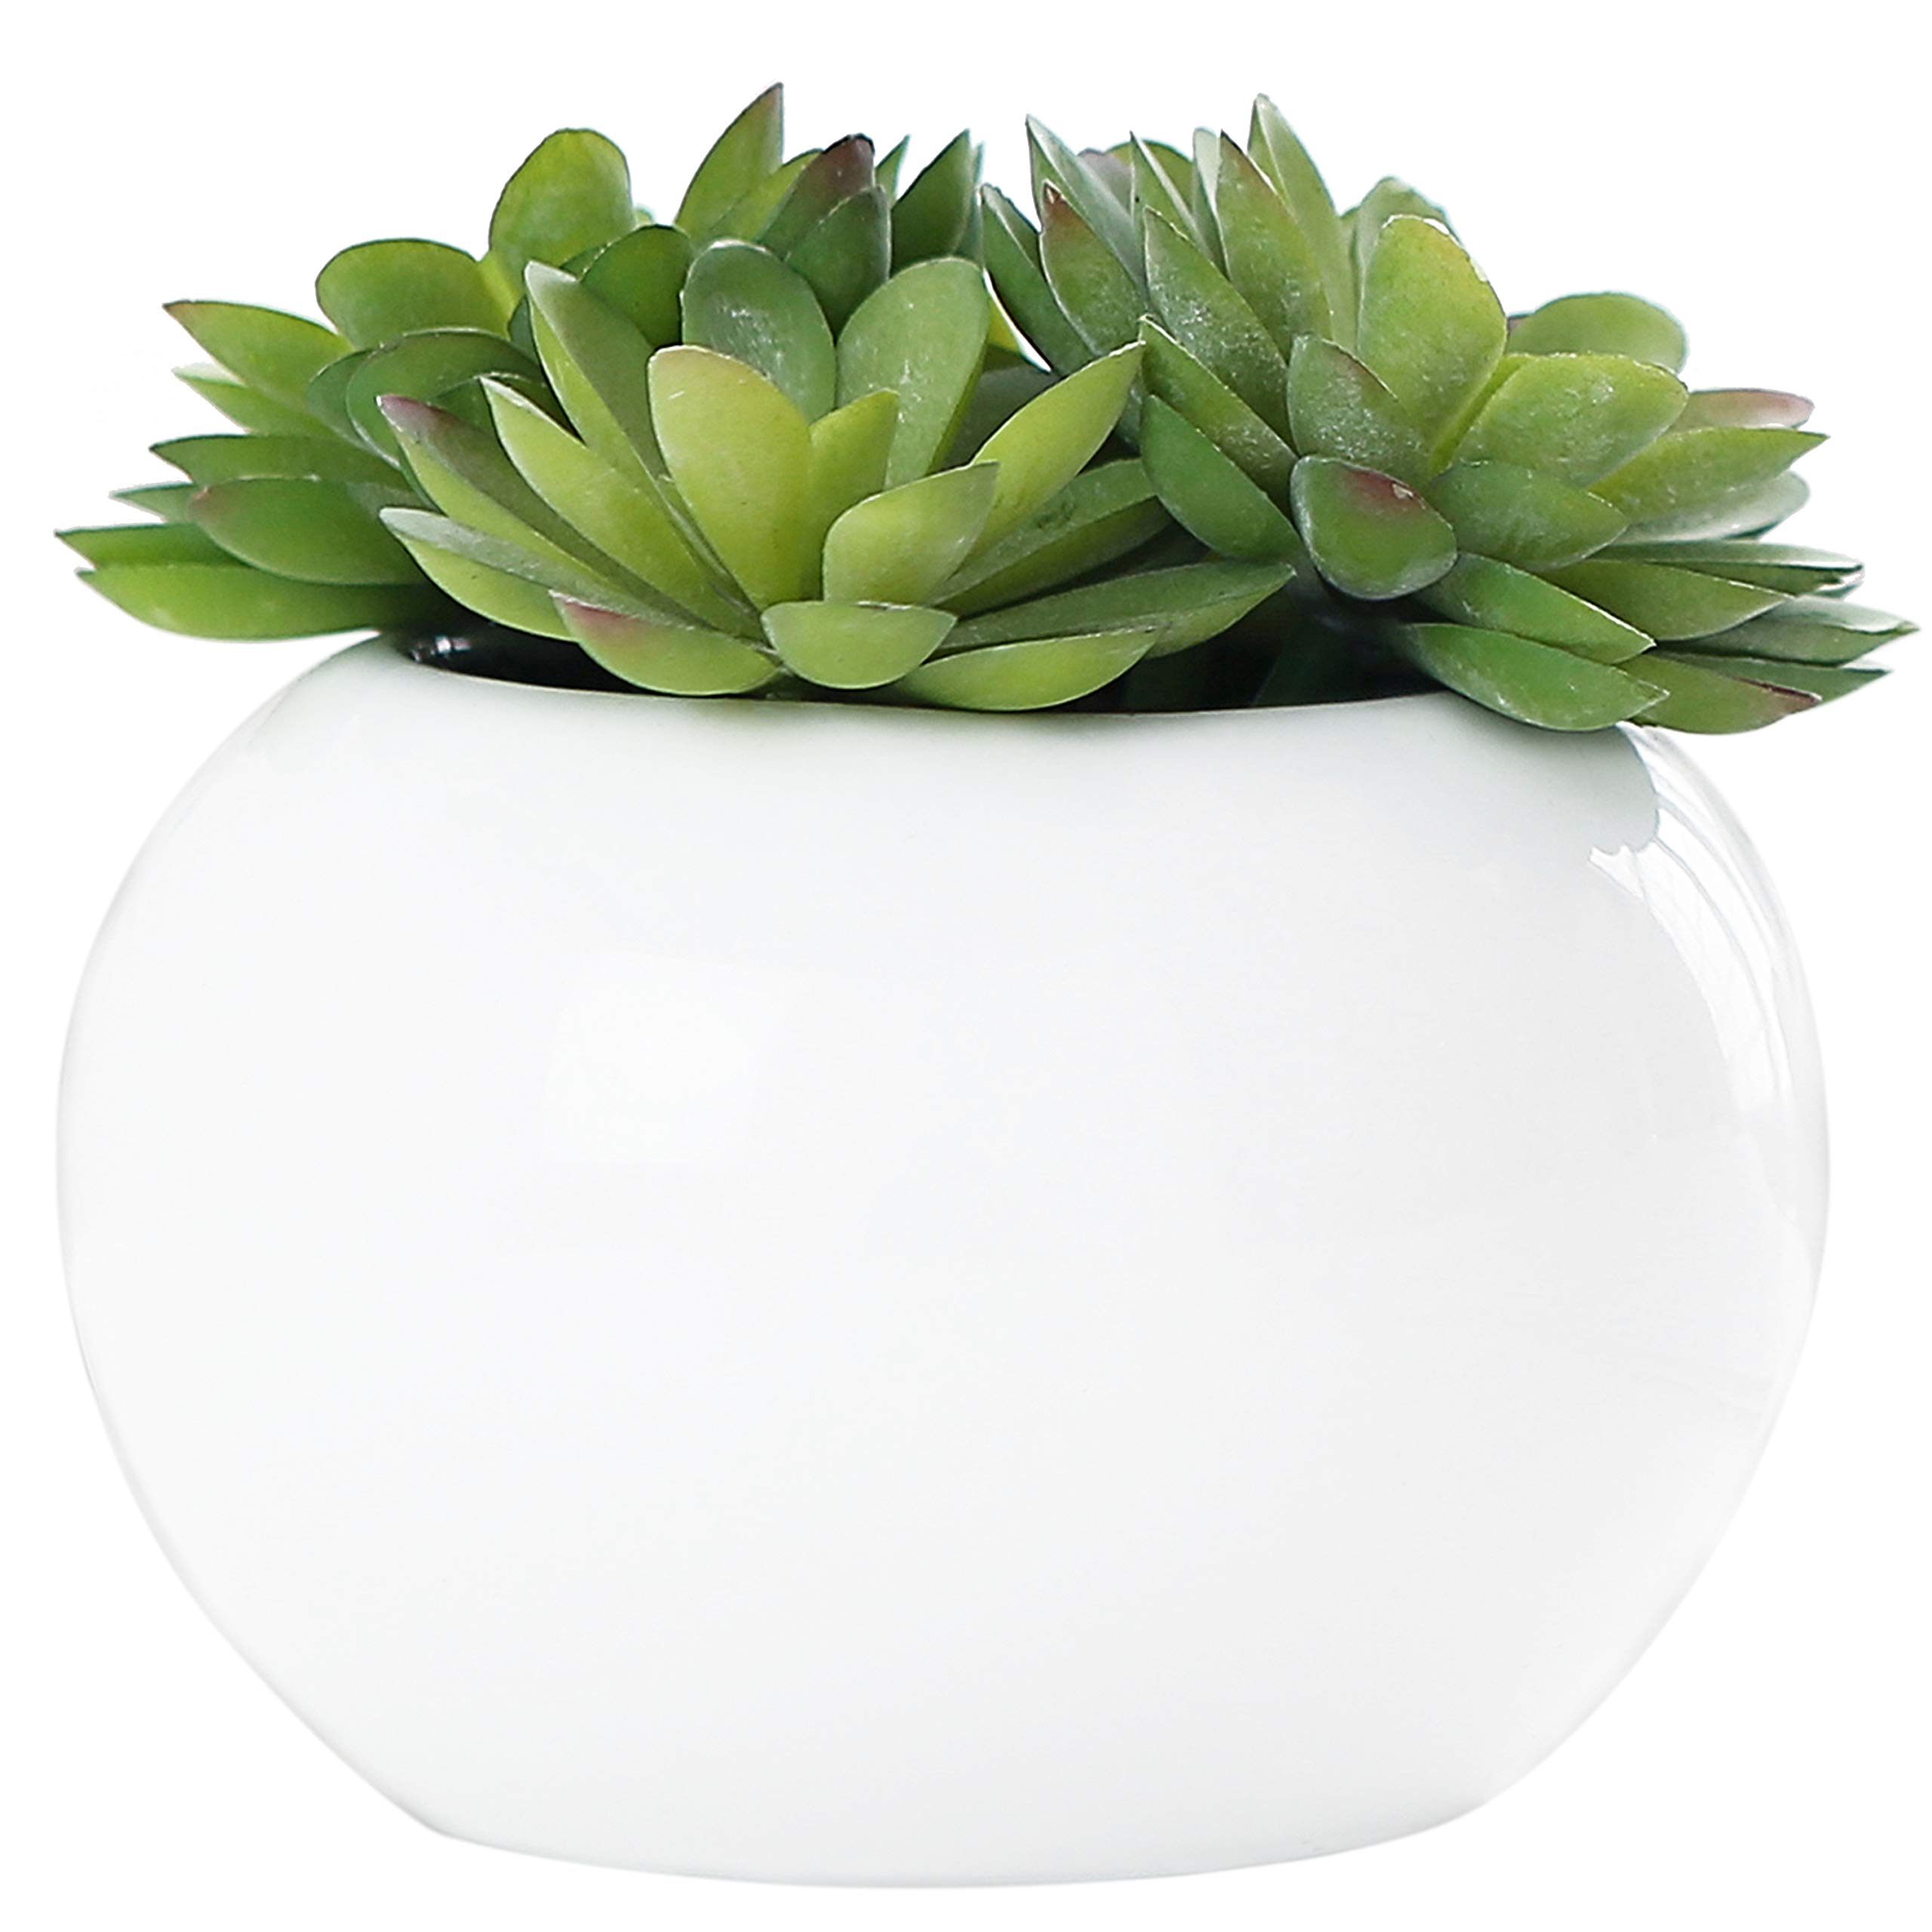 5.25 inch Round Modern Potted Green Artificial Succulent Plants w/ Glazed White Ceramic Flower Pot - MyGift